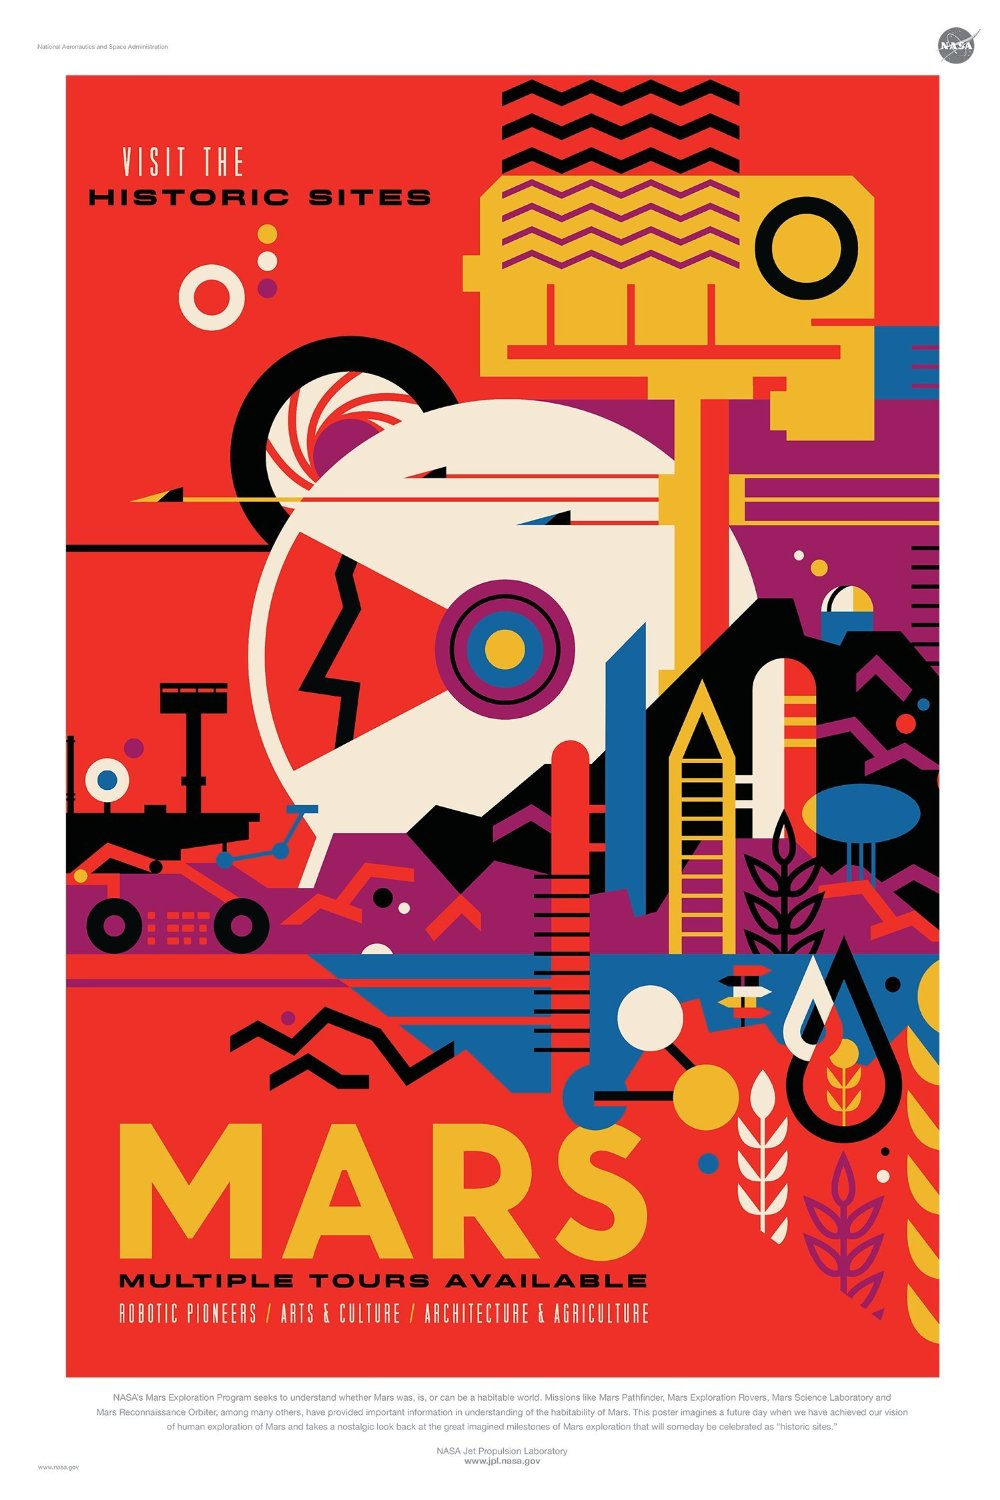 """Mars: Visit the Historic Sites - NASA JPL Space Tourism Travel Poster - Unframed (24"""" x 36"""") - Certified DigitalFusion CTI Printed in the U.S.A"""